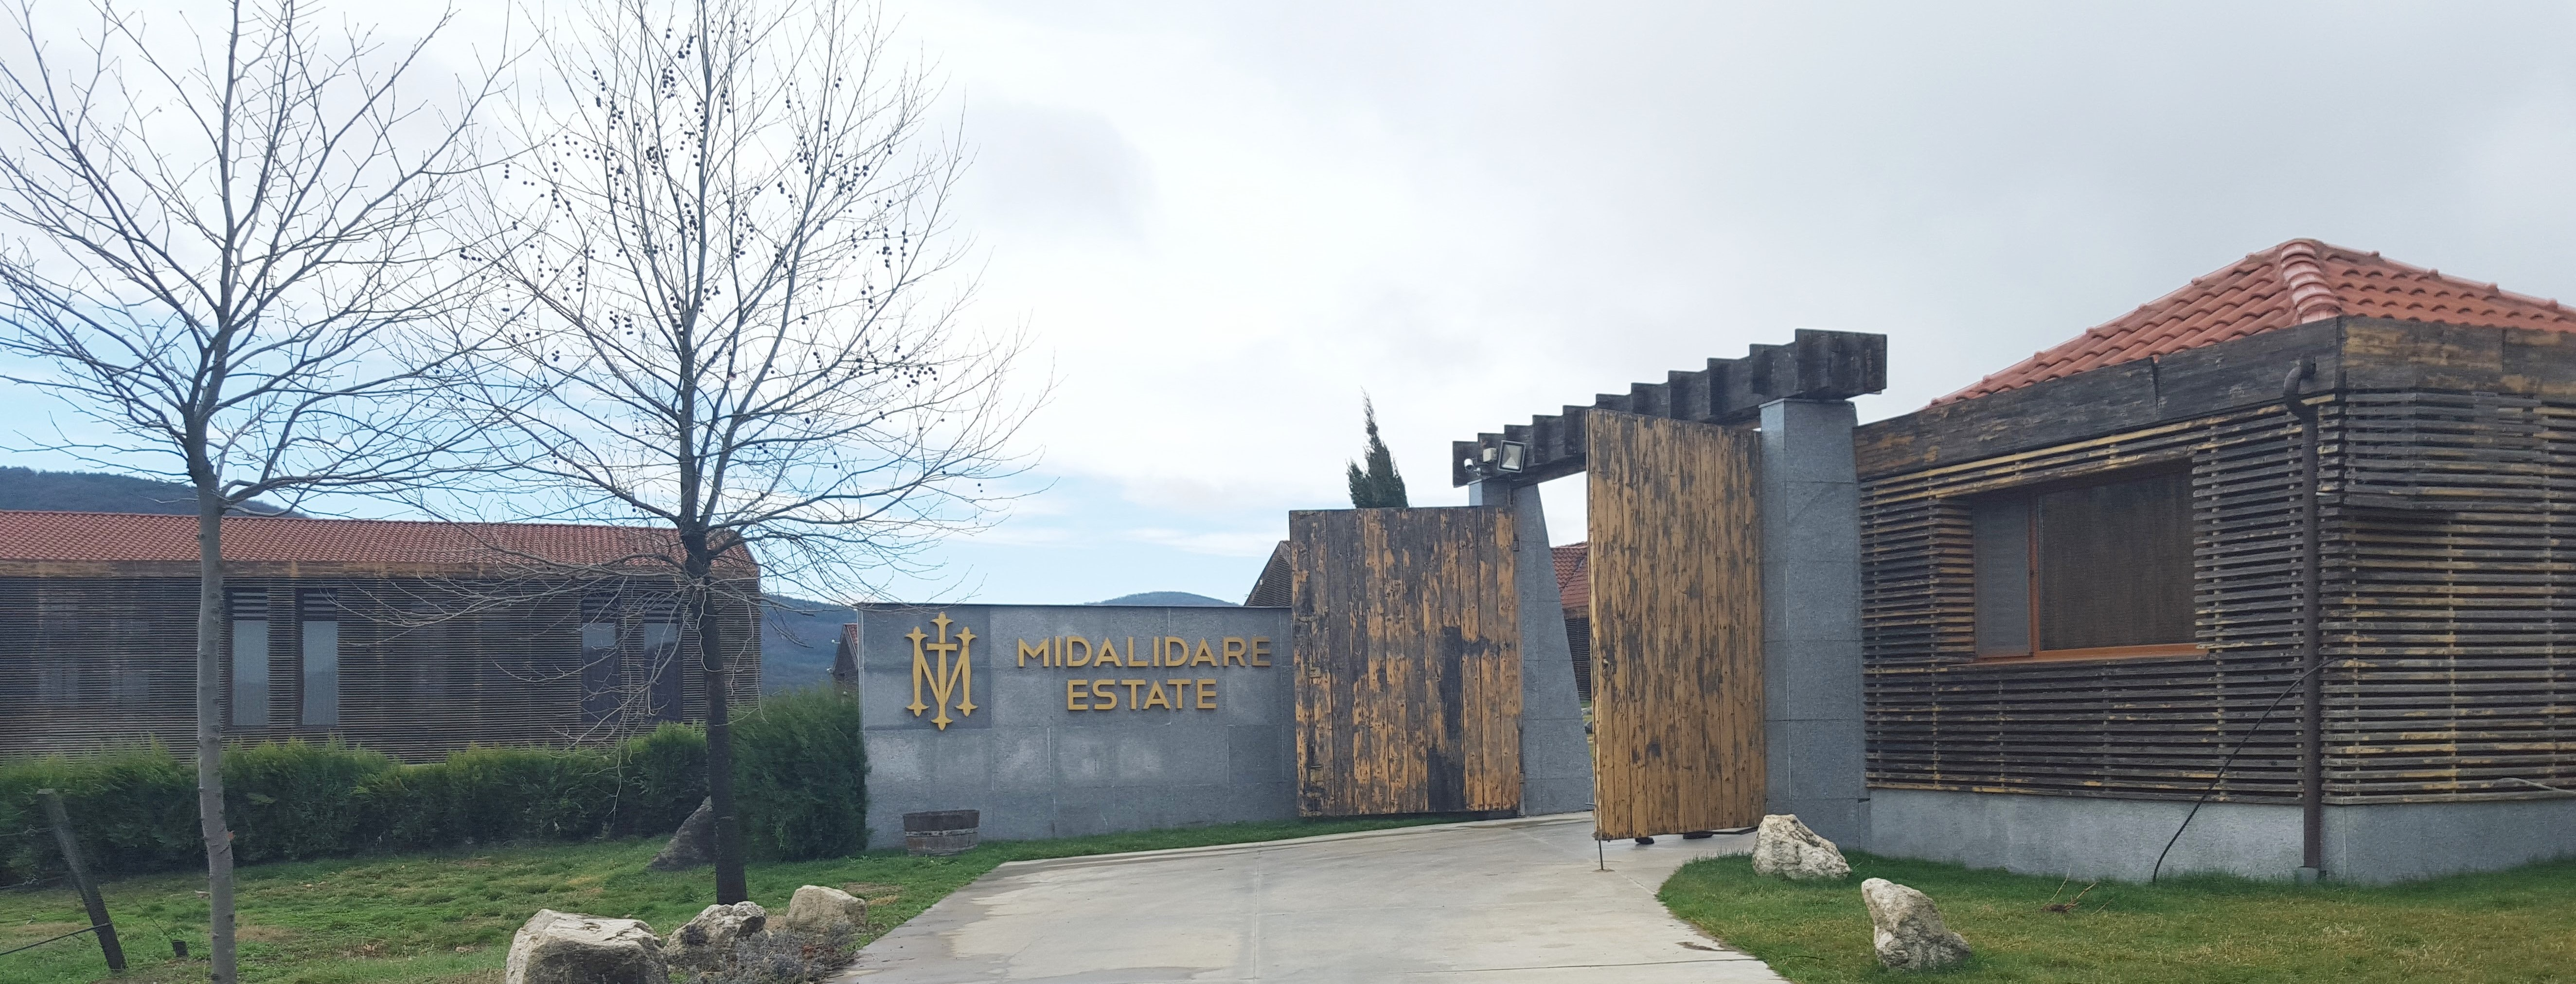 Entrance of winery 1 Midalidare Estate by placescases.com